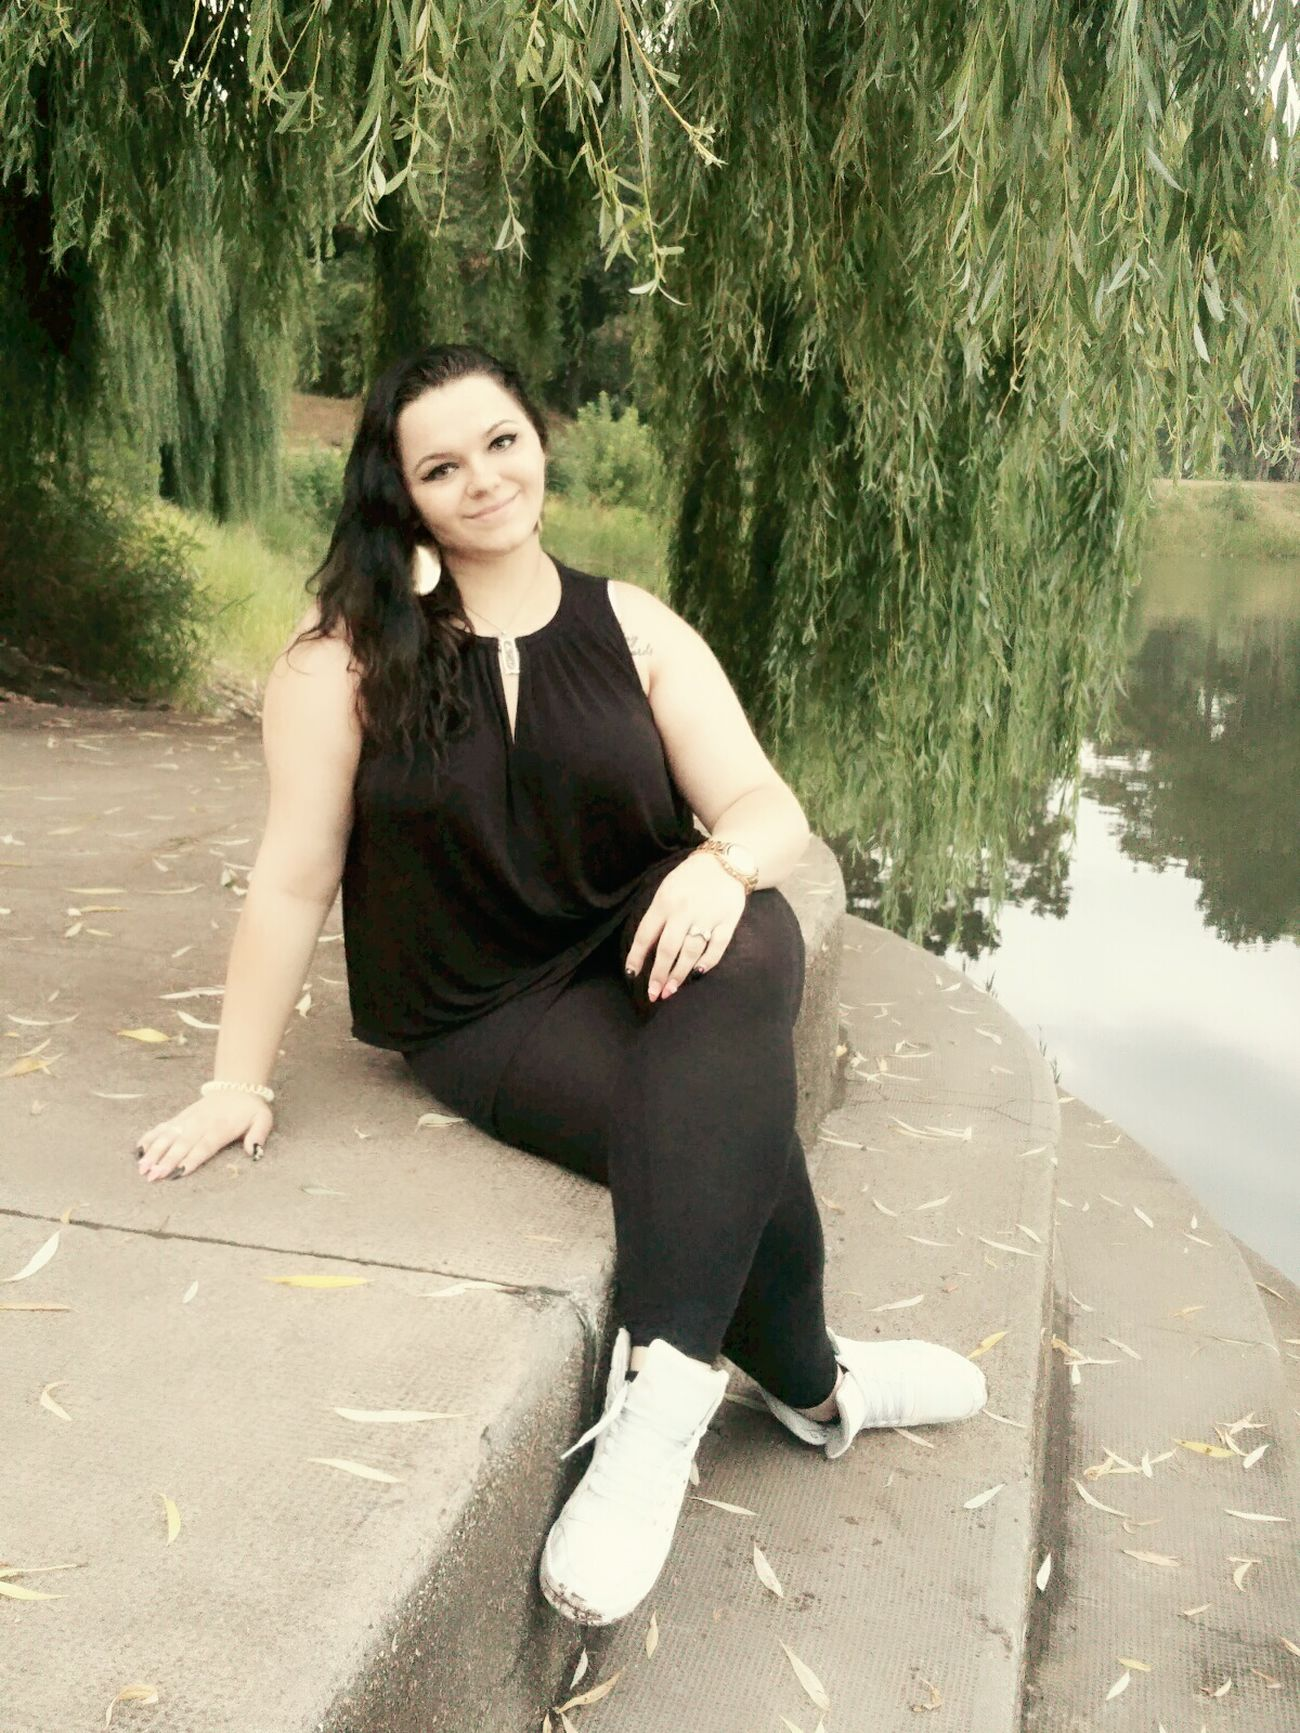 Boobiiiees! Sunny☀ Love ♥ Plussizebeauty Beautiful ♥ Cutenessoverload Lips #love #smile #pink #cute #pretty Cute♡ Curves ♥ *; Cute As Hell Plus Size Model Curvyisthenewsexy Fashion&love&beauty Student Life Outfit OOTD Curvy Girls Do It Better 😘 Faces Of EyeEm Outfit #OOTD Summer ☀ xoxo. ♡♡♡